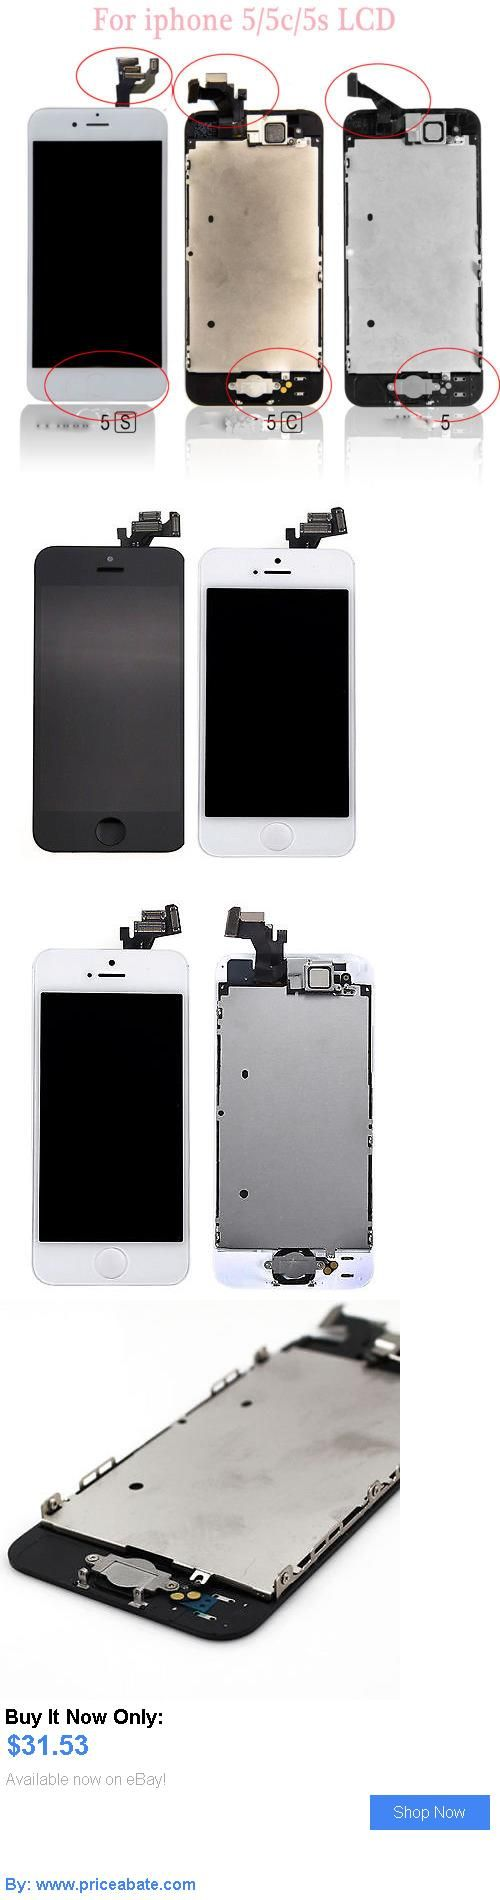 general for sale: Oem Lcd Display Touch Screen Digitizer Assembly Replacement For Iphone 5 5S 5C BUY IT NOW ONLY: $31.53 #priceabategeneralforsale OR #priceabate